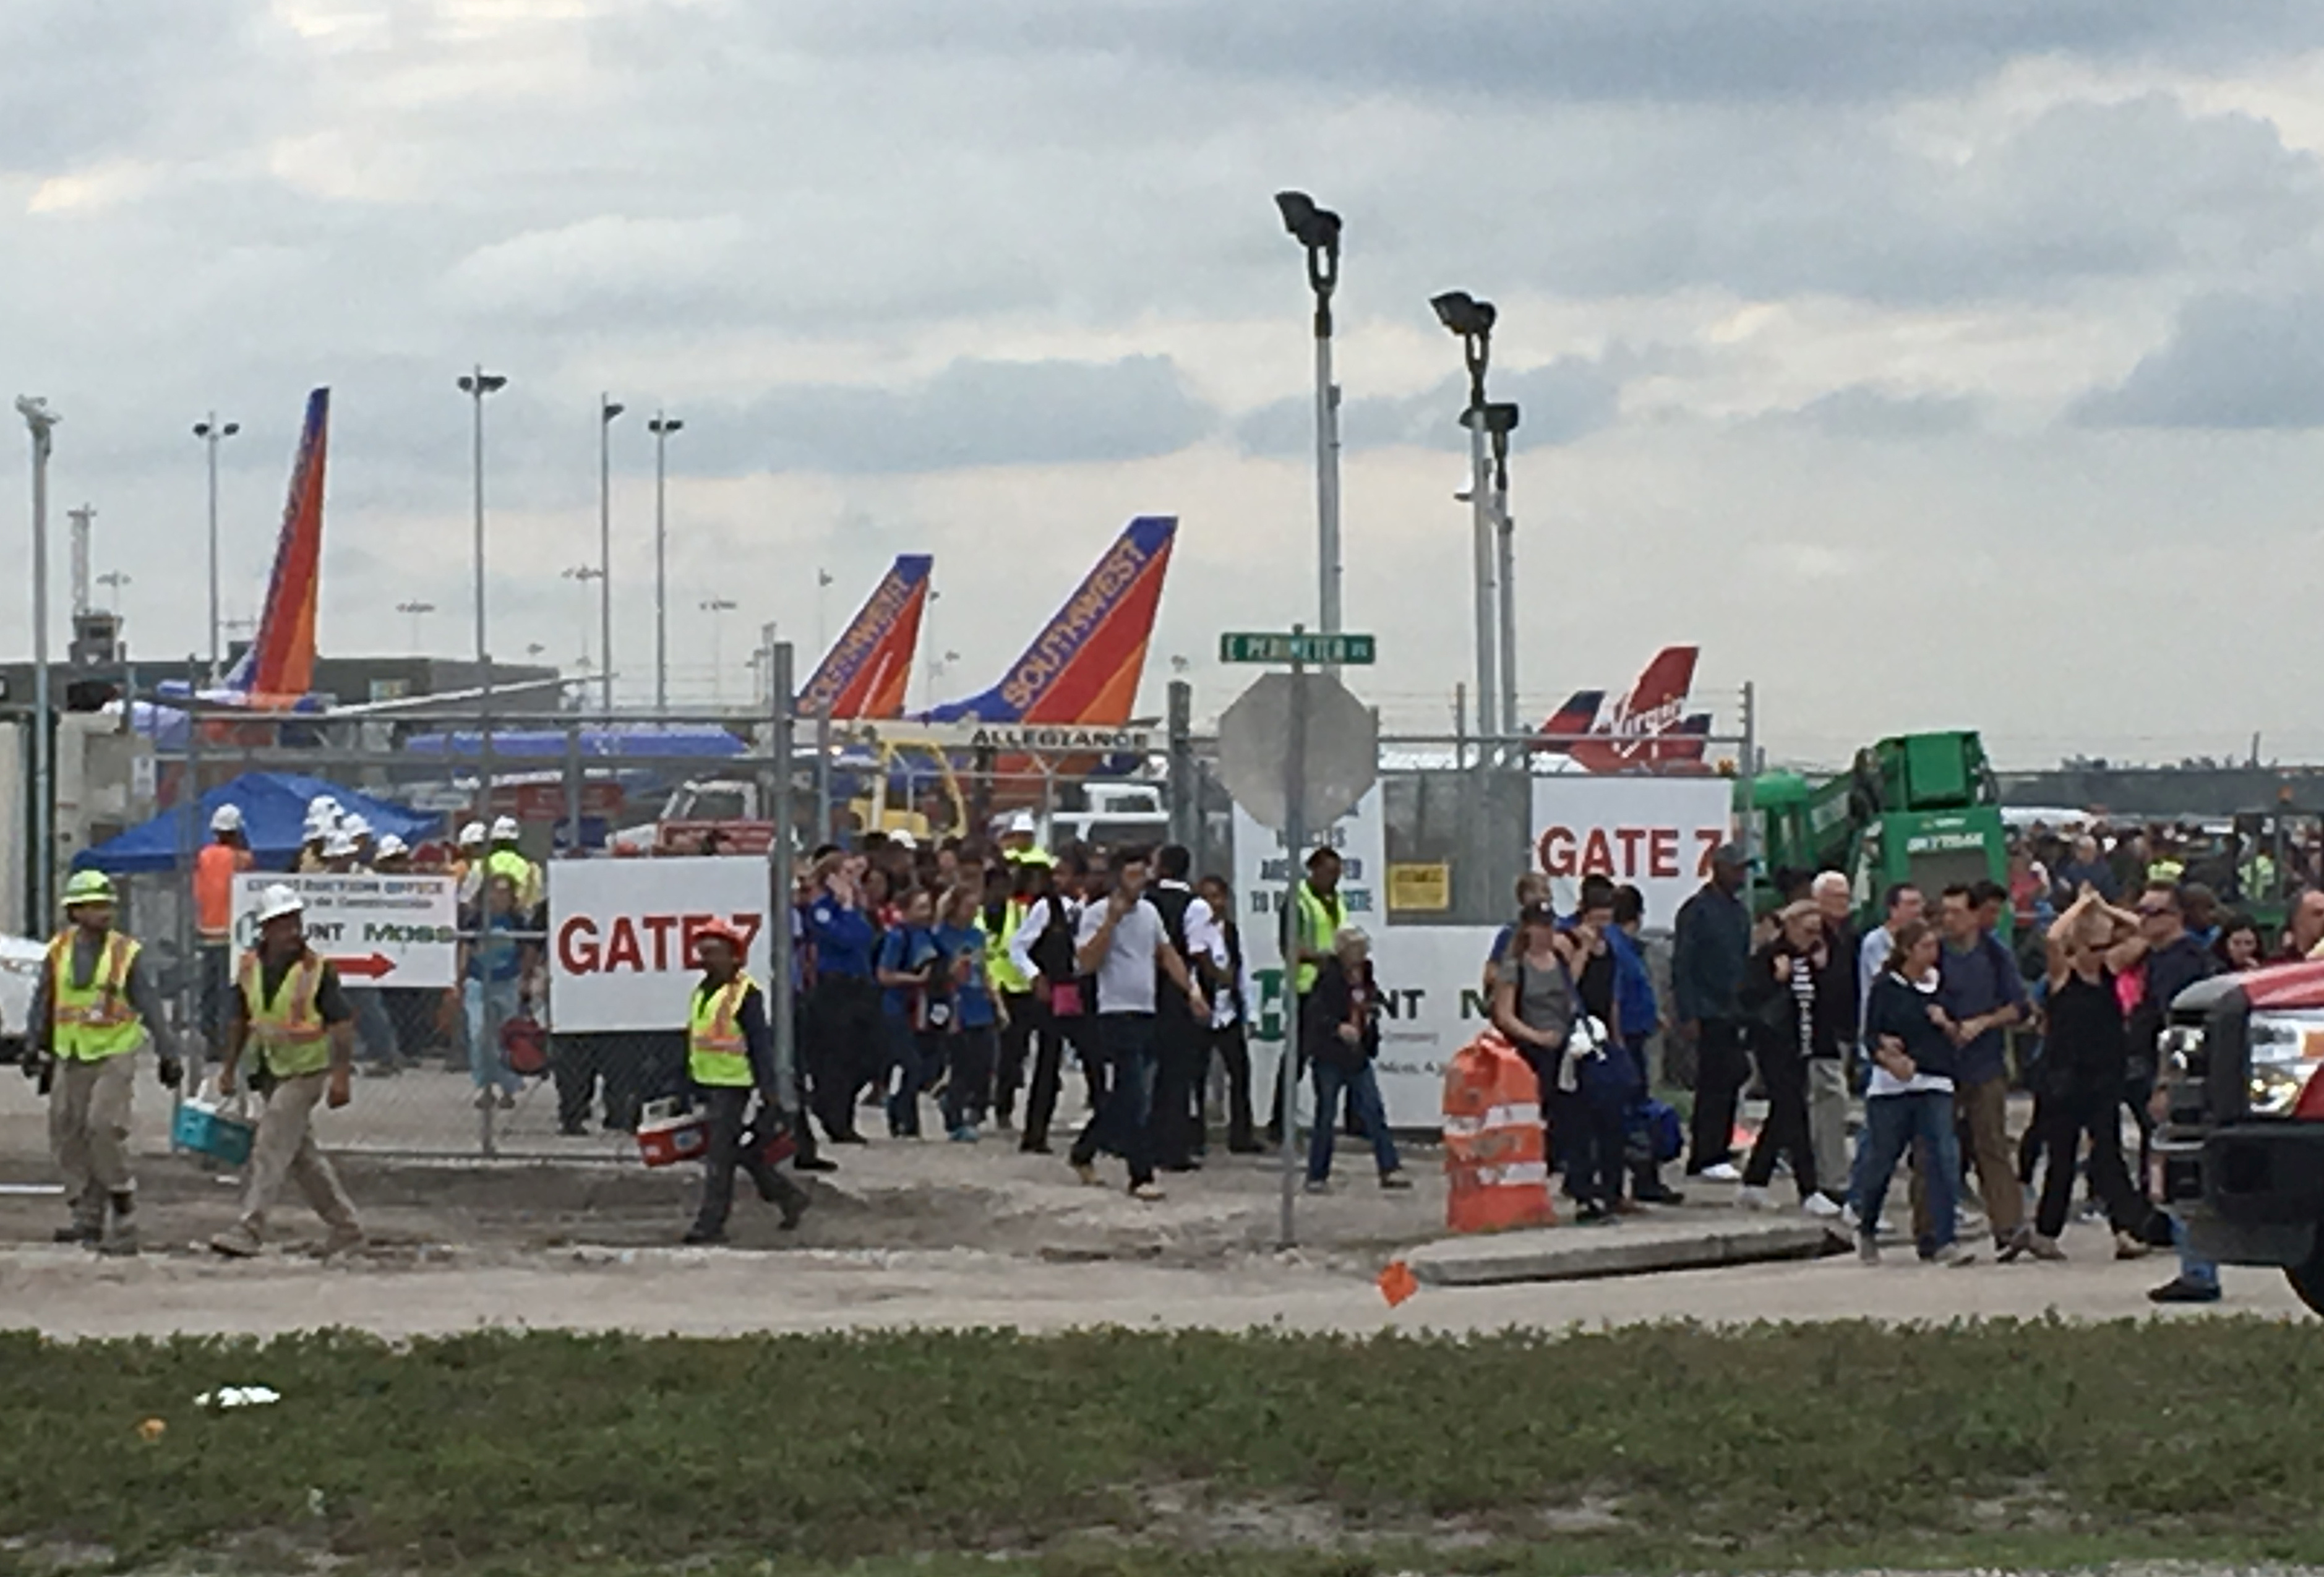 Travelers and airport workers are evacuated out of the terminal after airport shooting at Fort Lauderdale-Hollywood International Airport in Florida, Jan. 6, 2017.